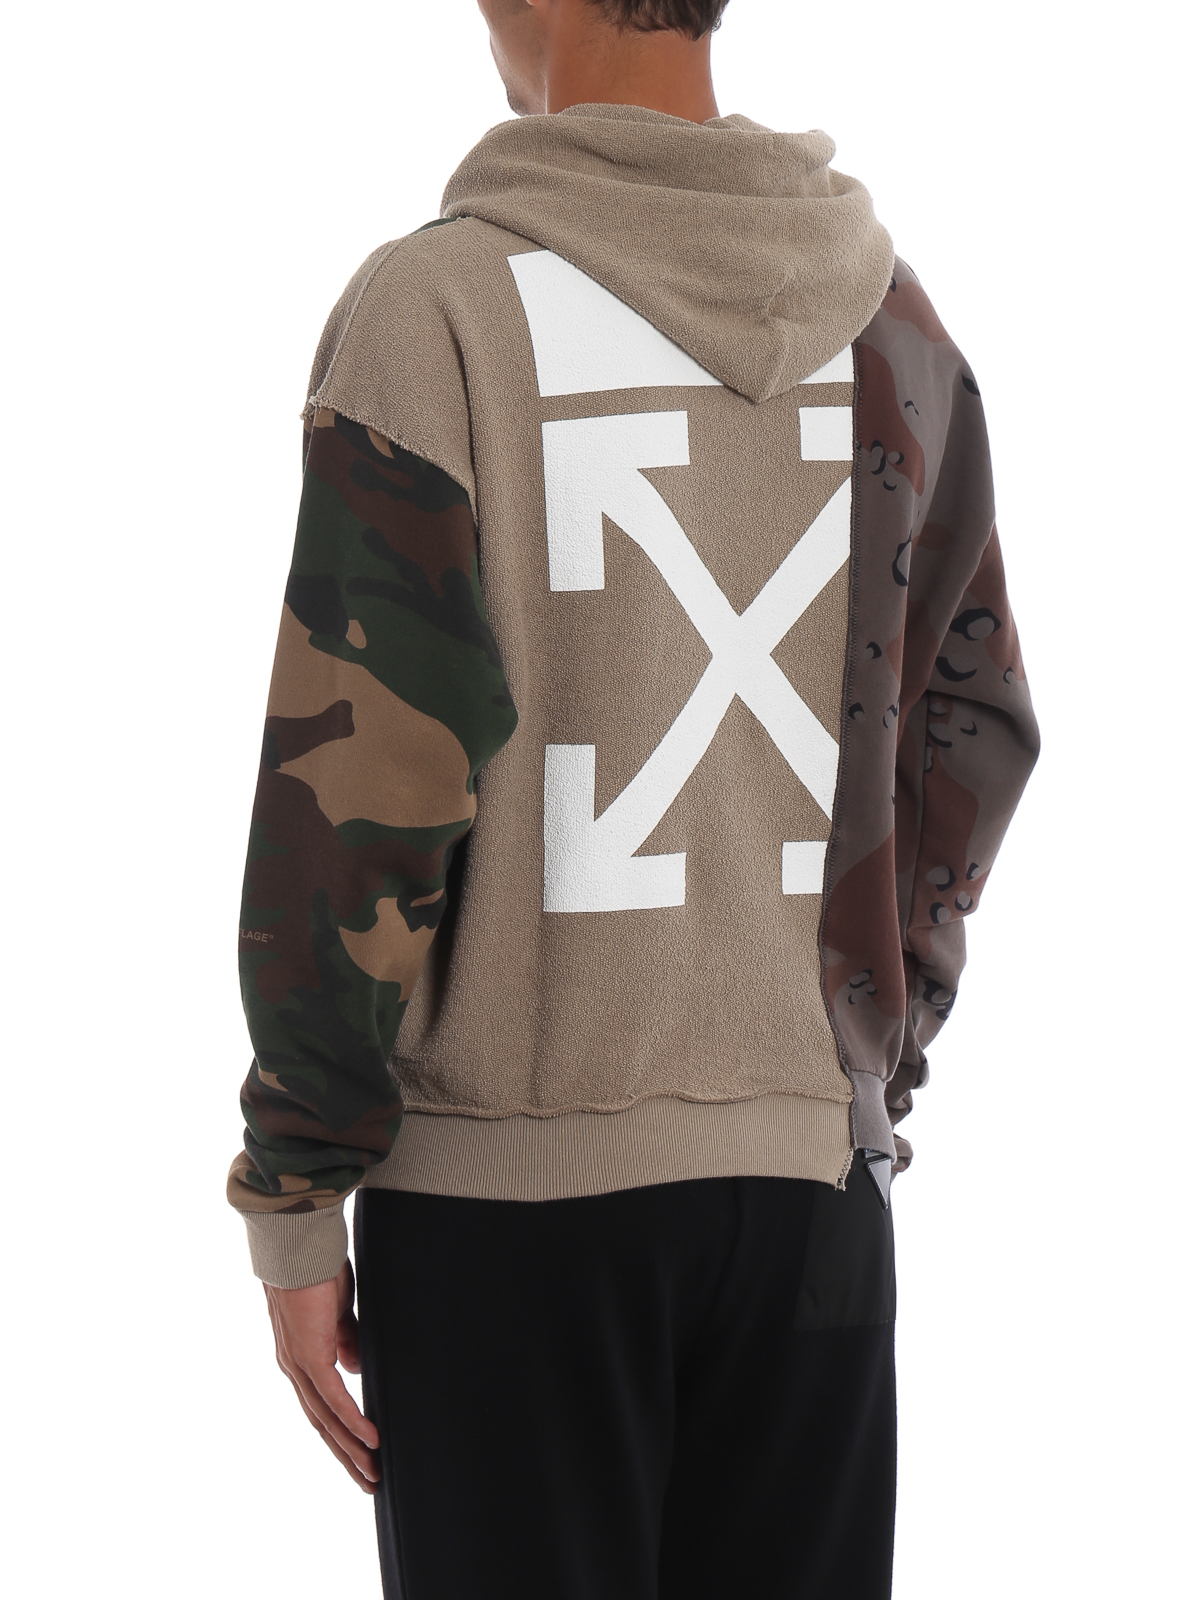 670302a12dfd Off-White - Reconstructed Camo hoodie - Sweatshirts   Sweaters ...